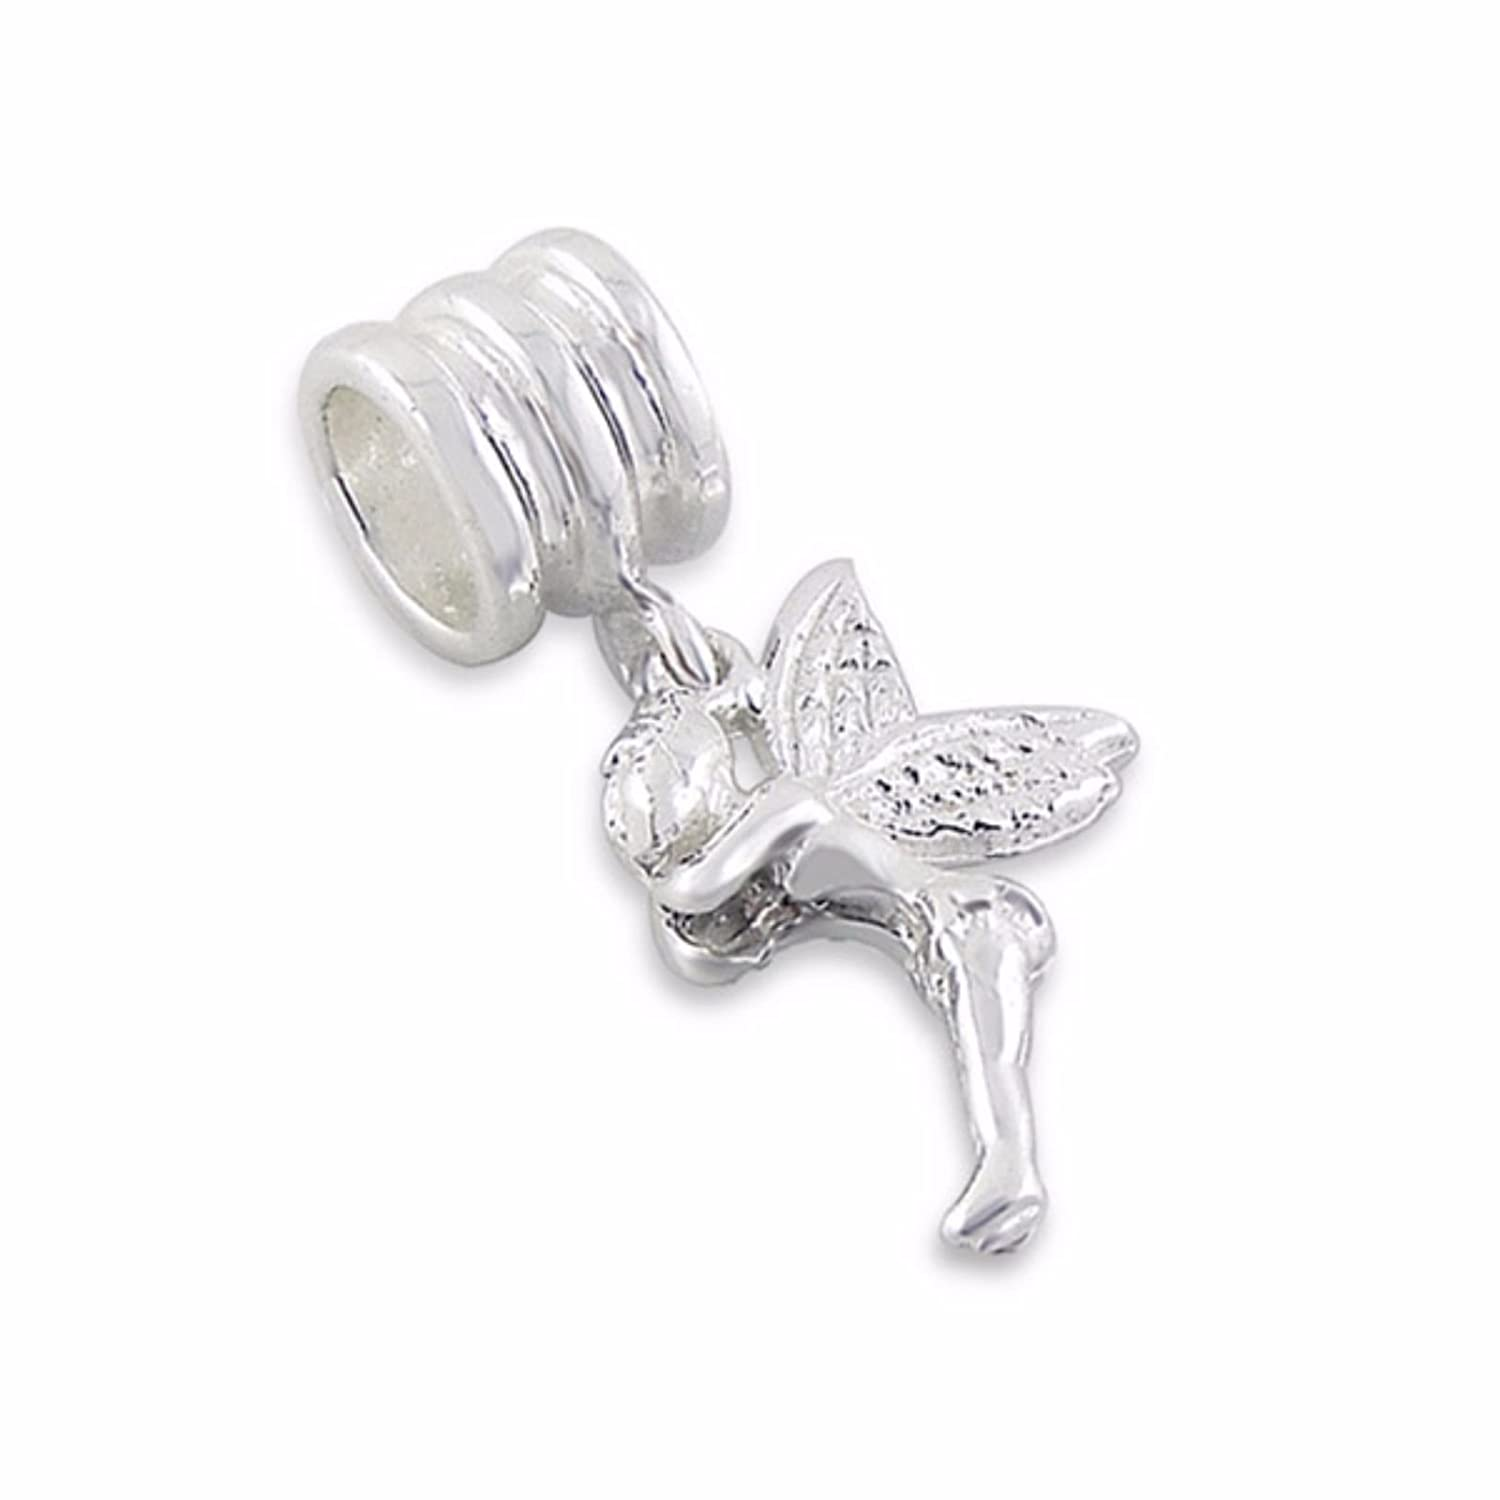 BT-A1 Olivia Garden Boutique Apron Black